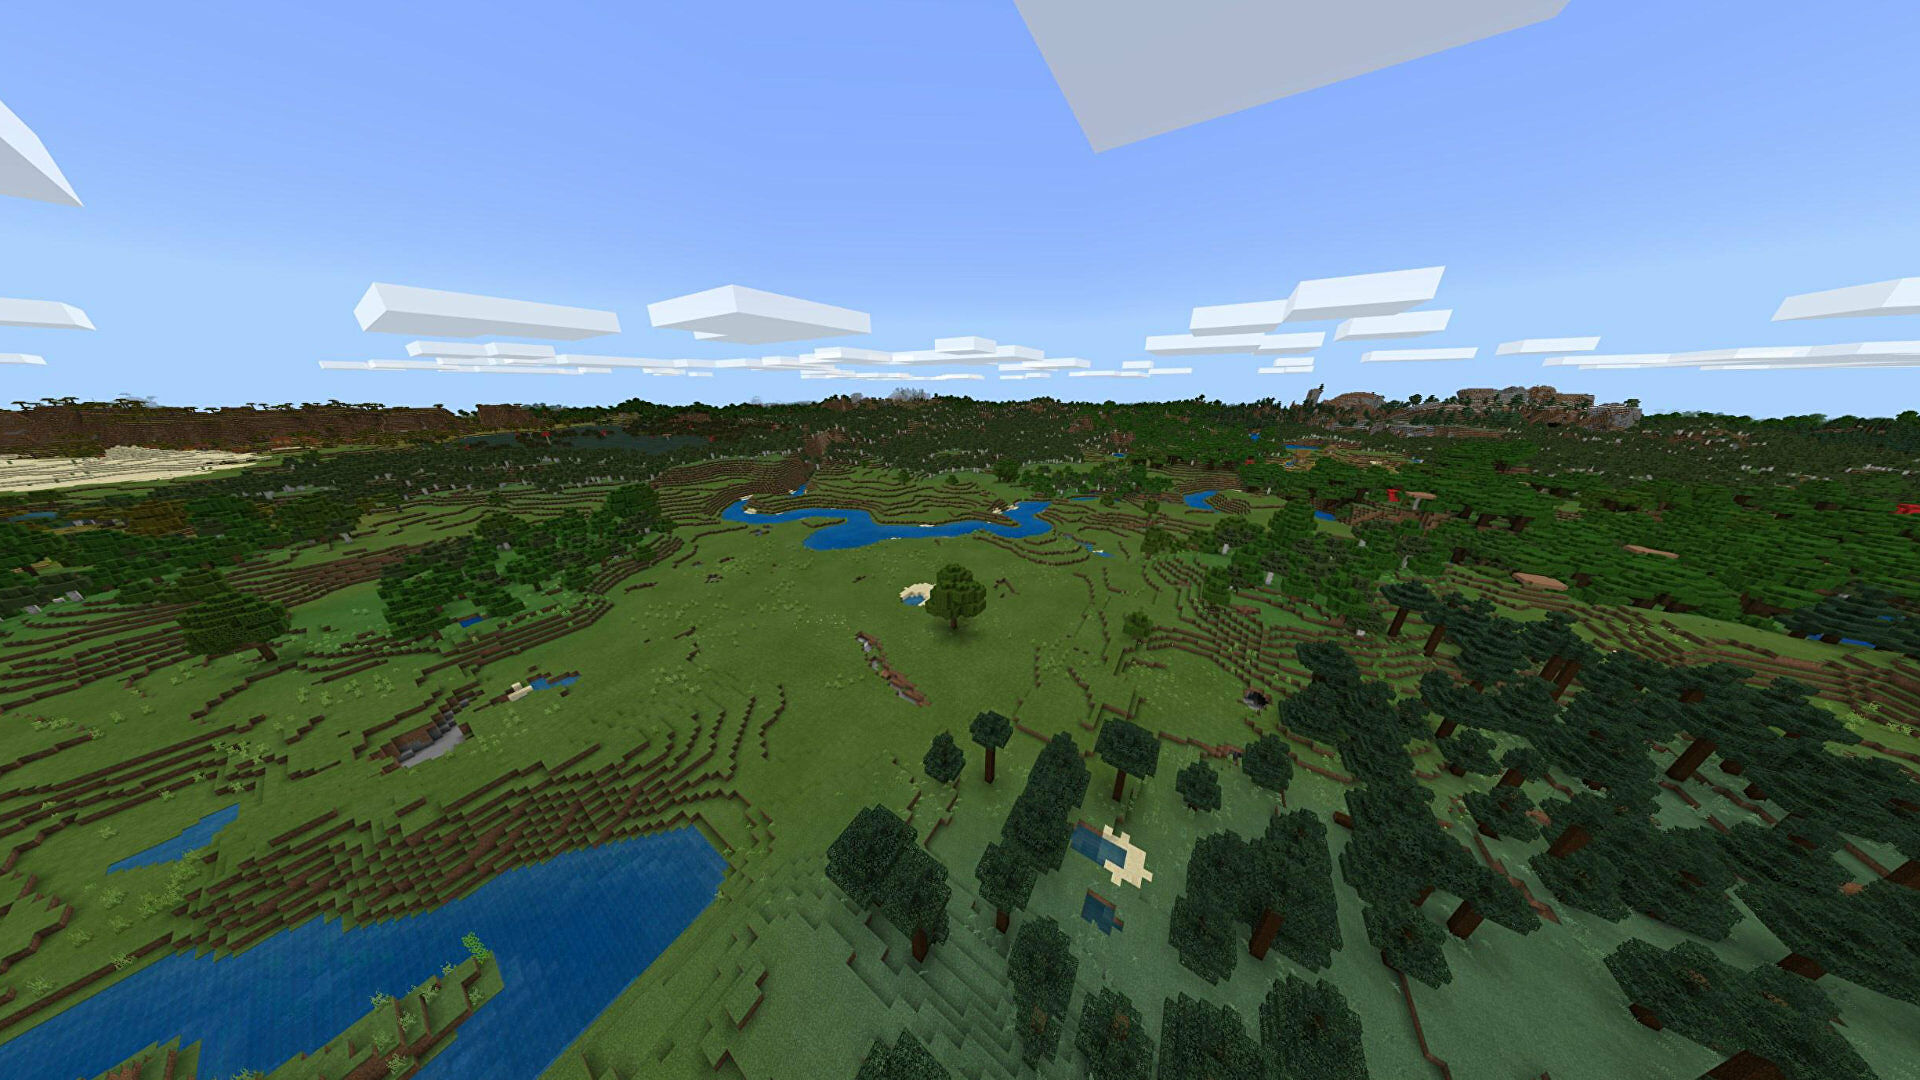 A Minecraft Bedrock screenshot of a new world created with the seed 2141551899.